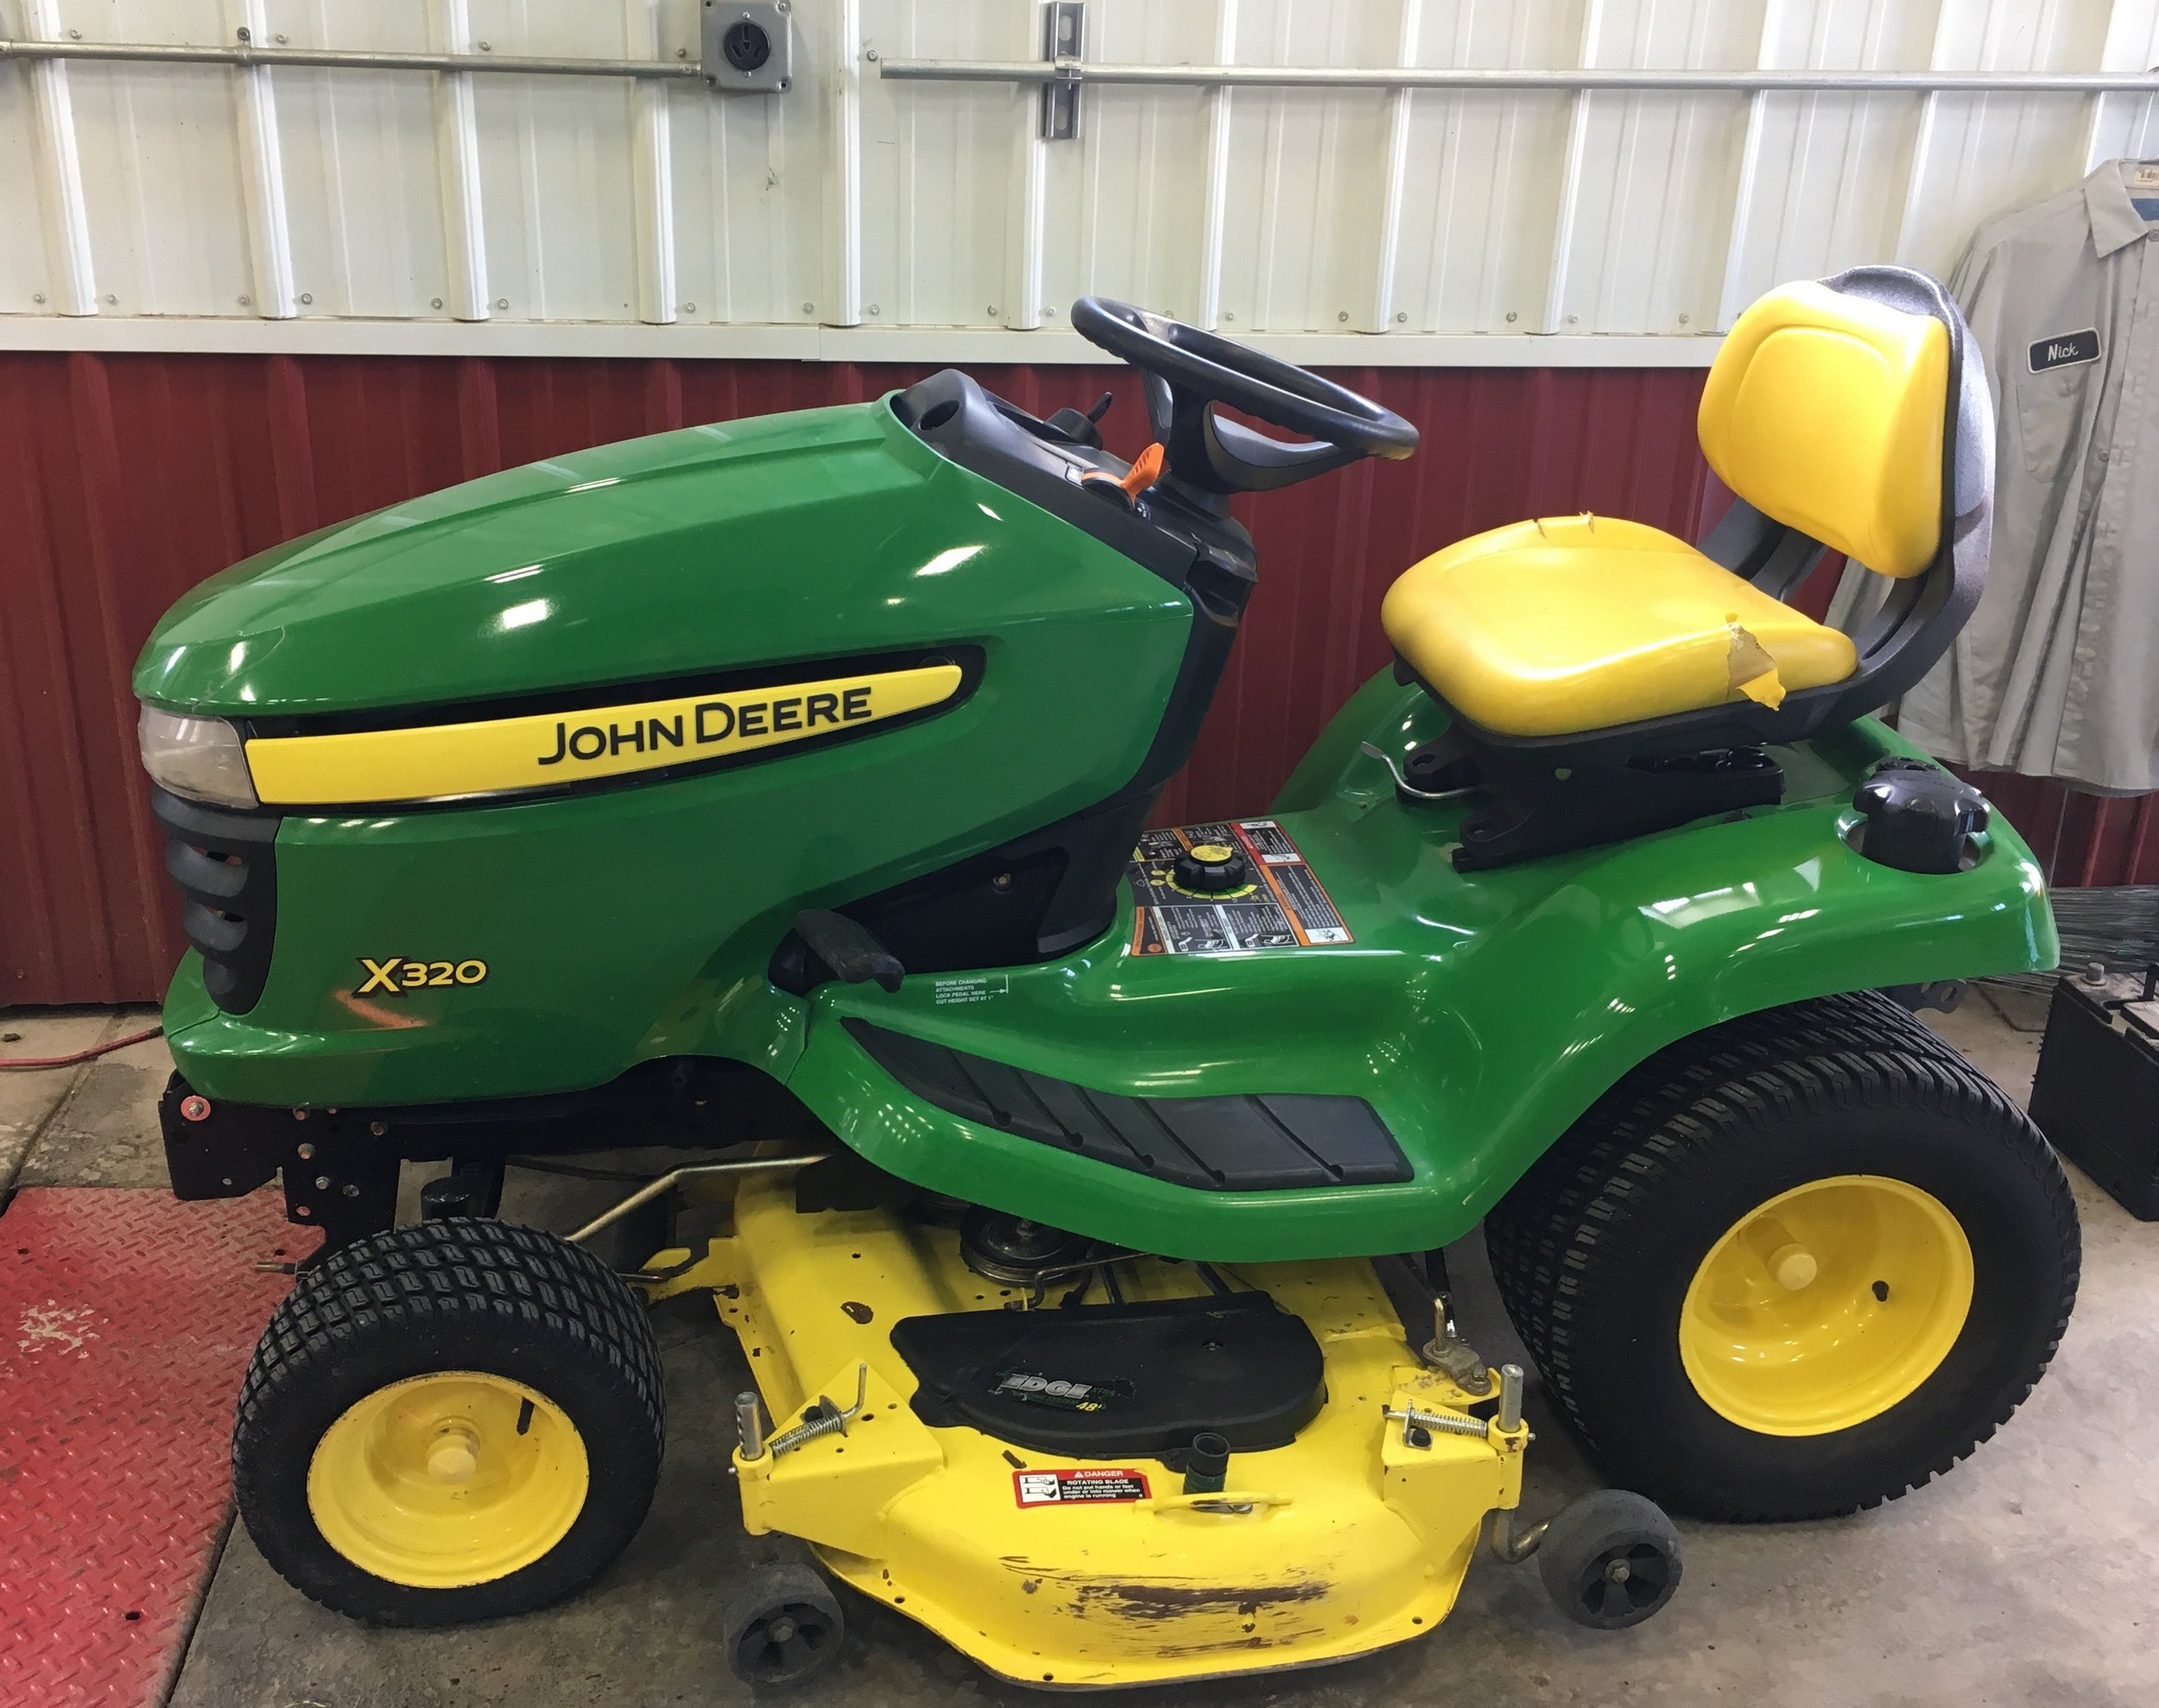 Other - We also offer a number of other types of equipment and products like lawn mowers, bed liners, and more.